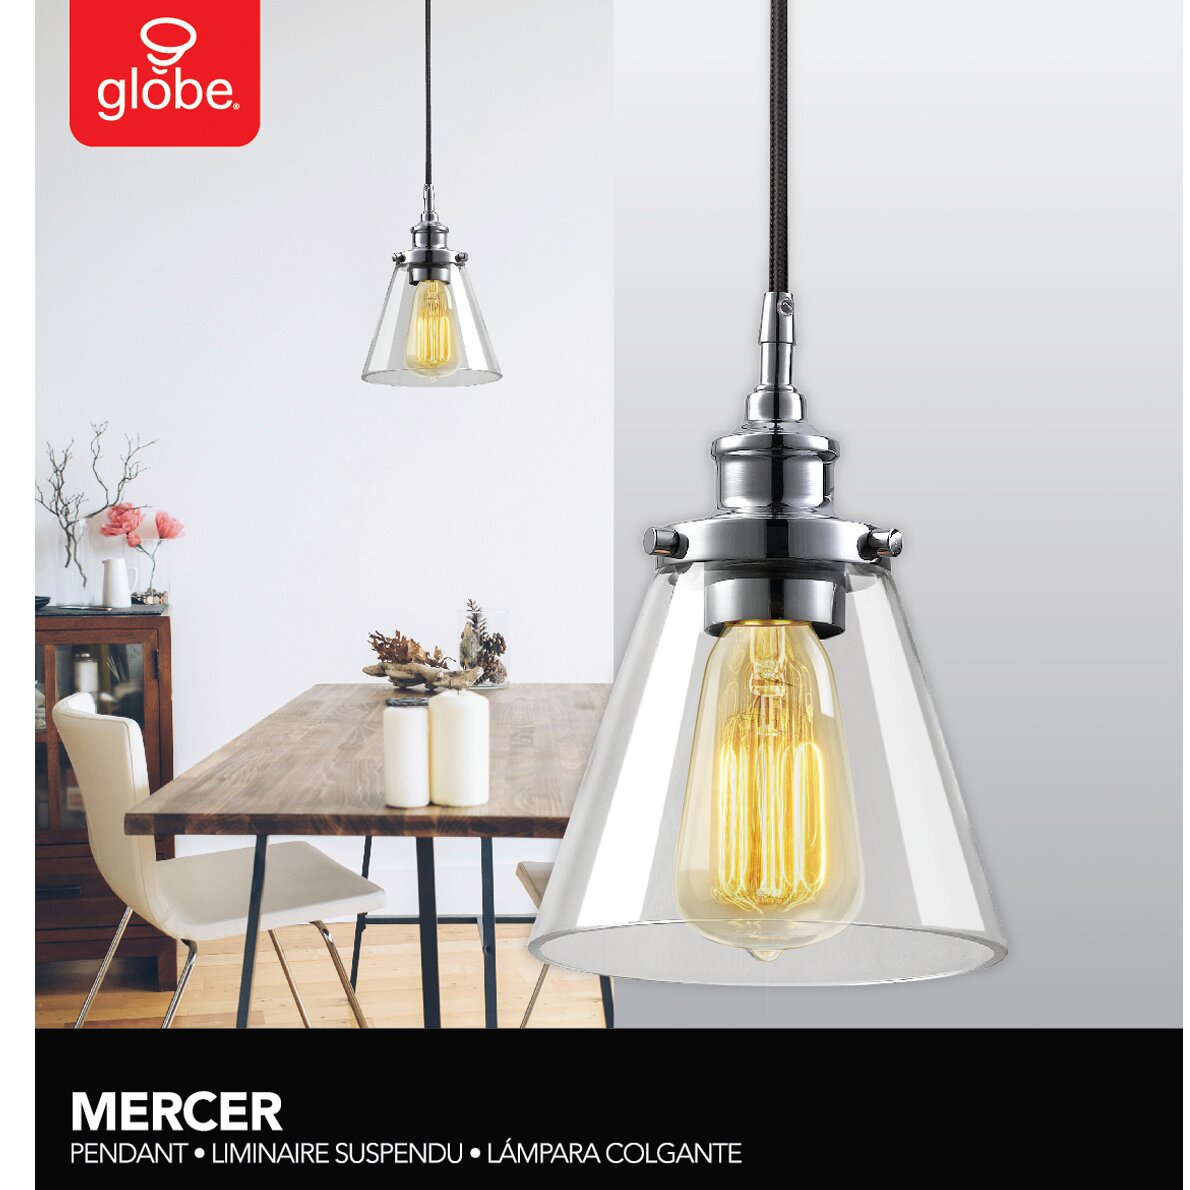 Globe electric company angelica 1 light mini pendant reviews - Angelica kitchen delivery ...